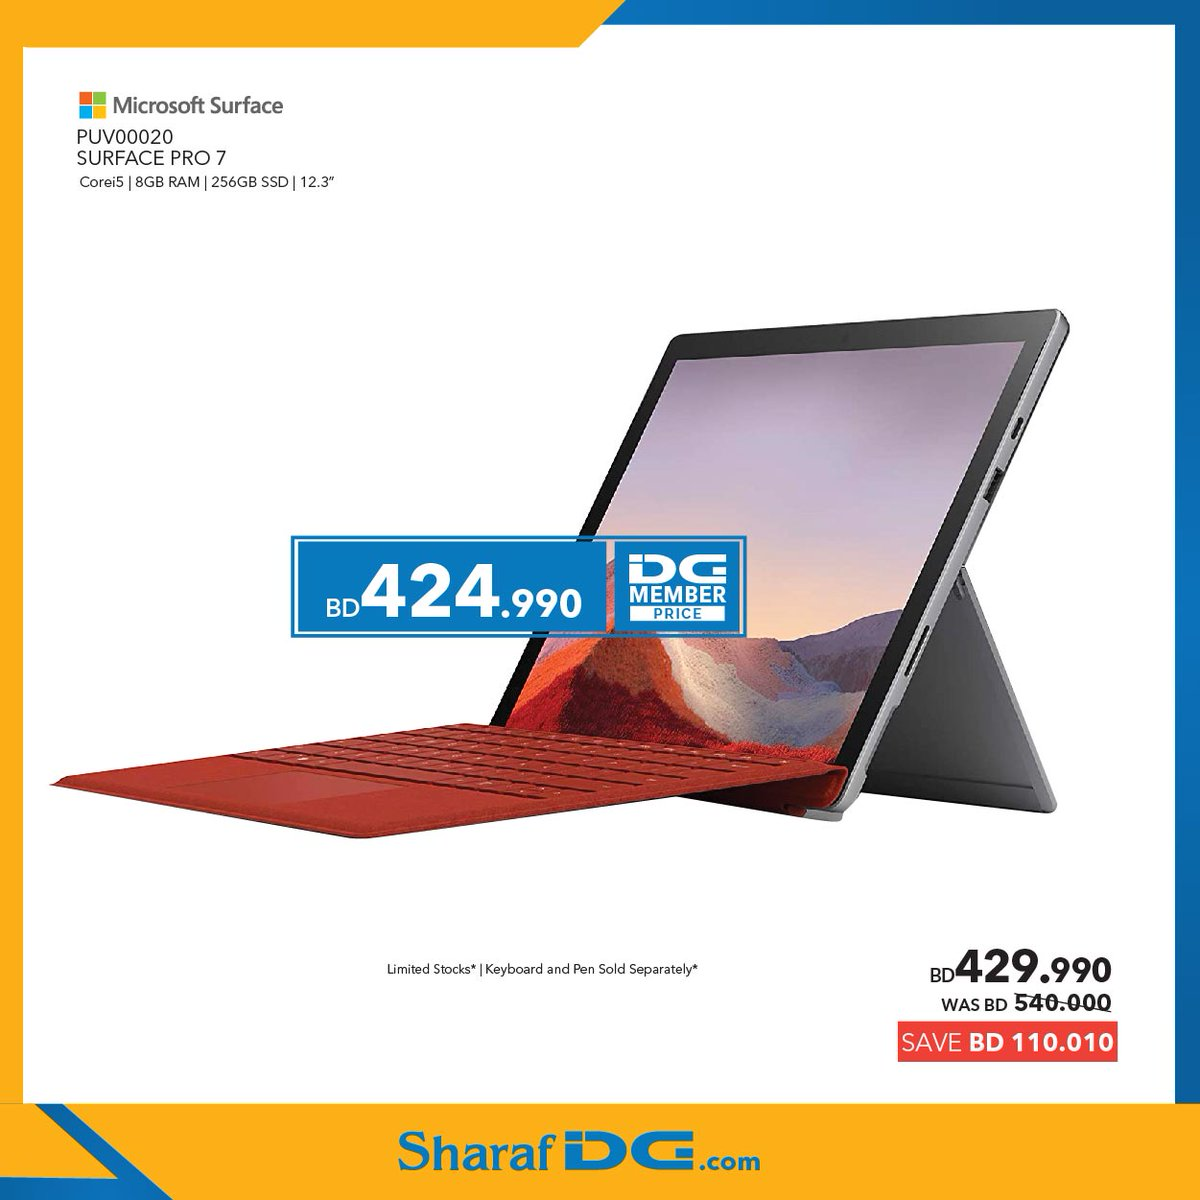 Buy Your New Surface Pro 7 @ Sharaf DG and Get Scratch & Win + Free vouchers with your Purchase. T&C apply* 🛒 Shop @ https://t.co/co2IruzwyB Promo valid till 4th Nov 2020 / Limited Stocks*  #bahrain #bahrain_offers #bahrainoffers #sharafdgbahrain #Surfacepro7 #MicrosoftSurface https://t.co/rVJhycNGuZ